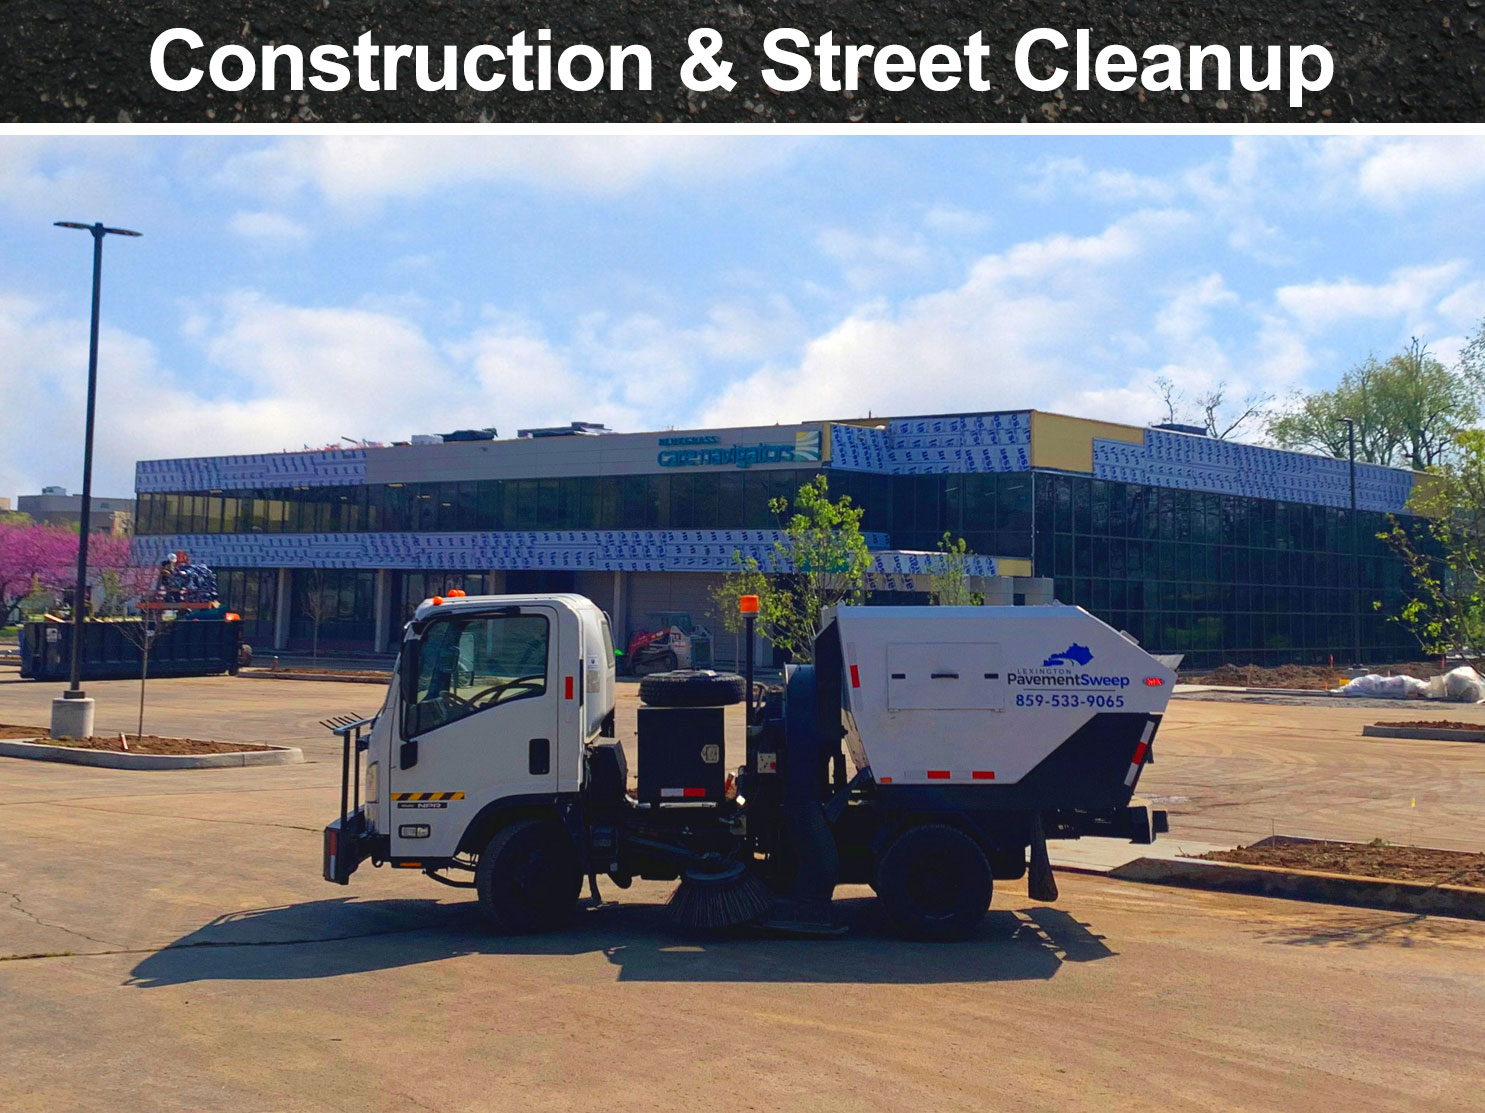 Construction-&-Street-Cleanup